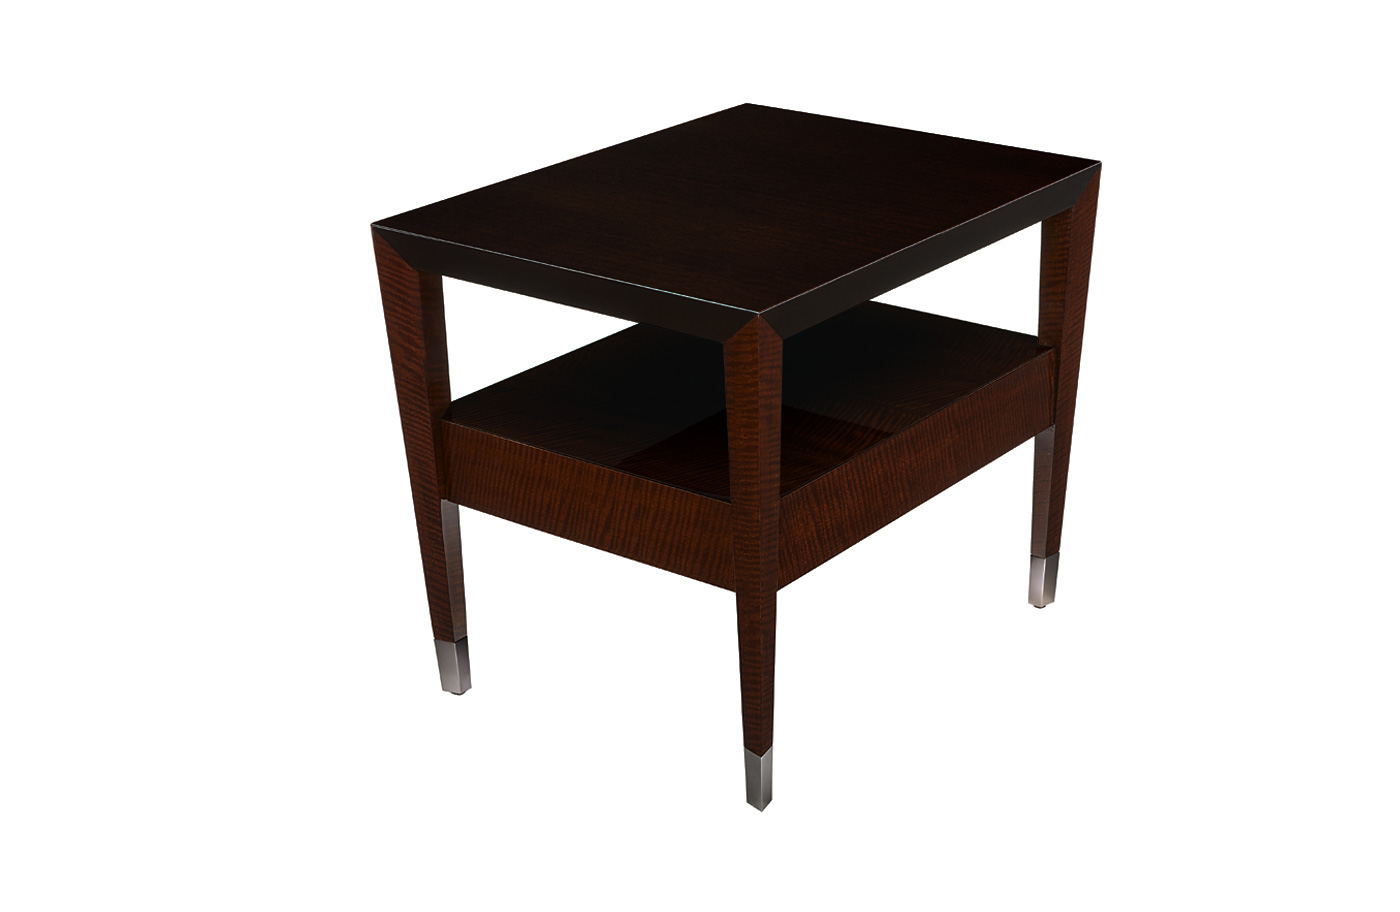 lorin marsh furniture side and occasional tables knox accent table cordless bedside lights black grey night slim couch uttermost pub with storage pottery barn kids coffee living